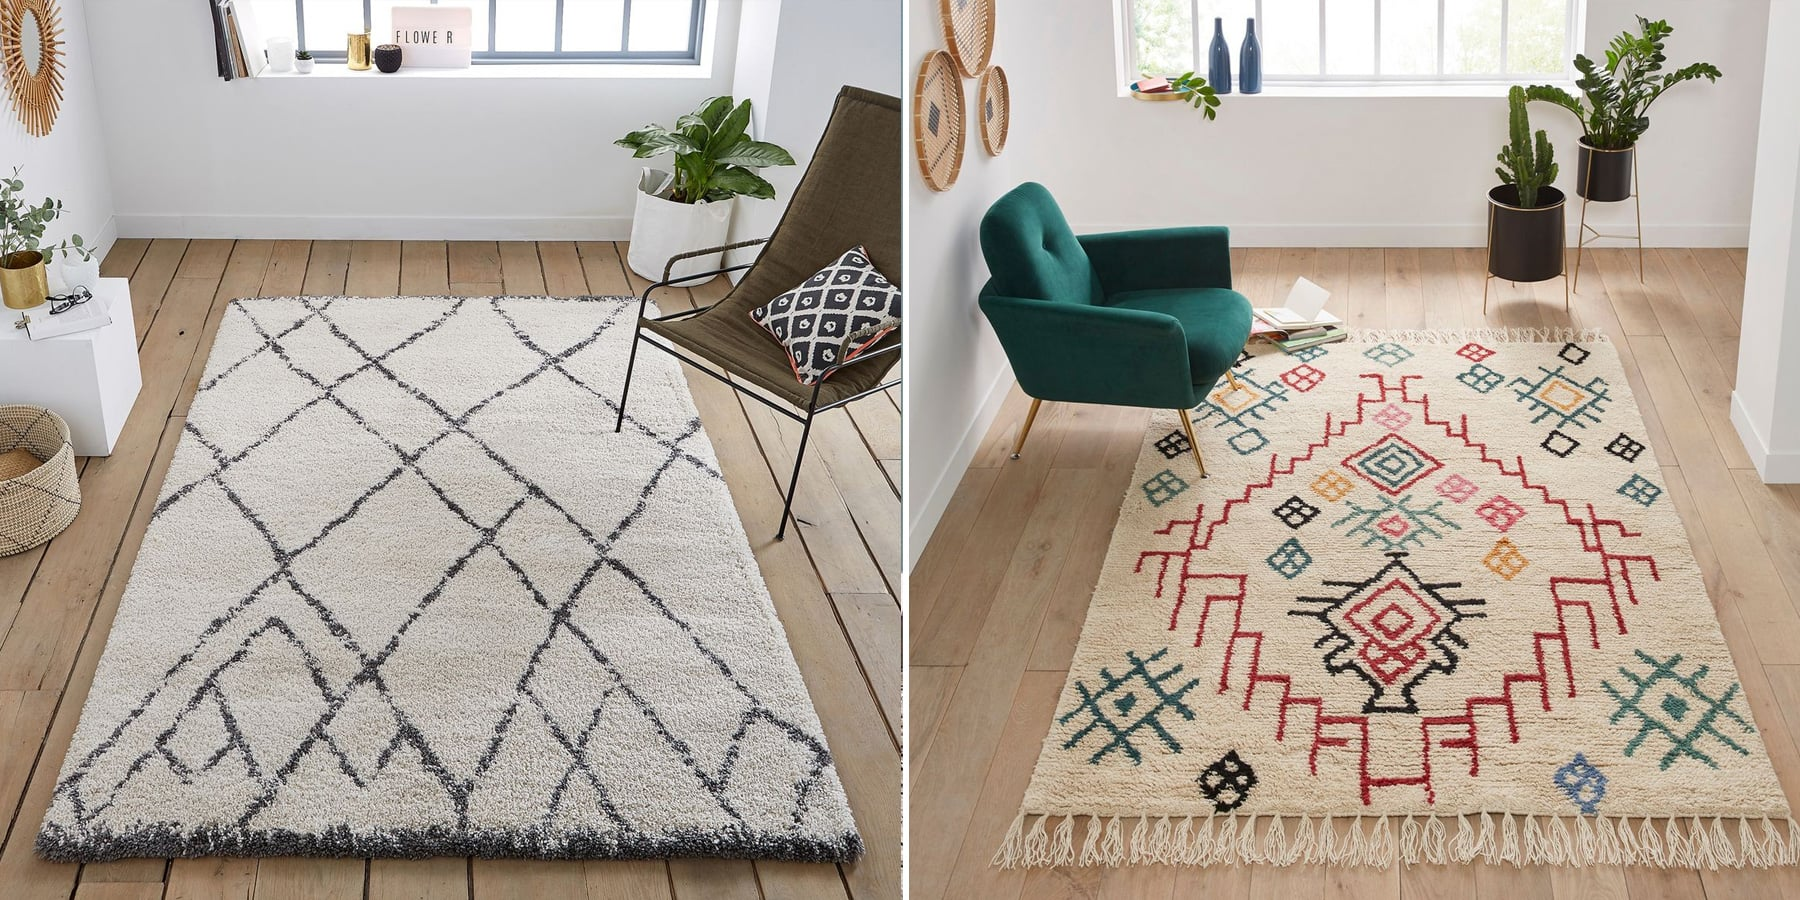 O acheter un tapis style berb re en laine ou en synth tique blog d co - Les differents types de tapis ...